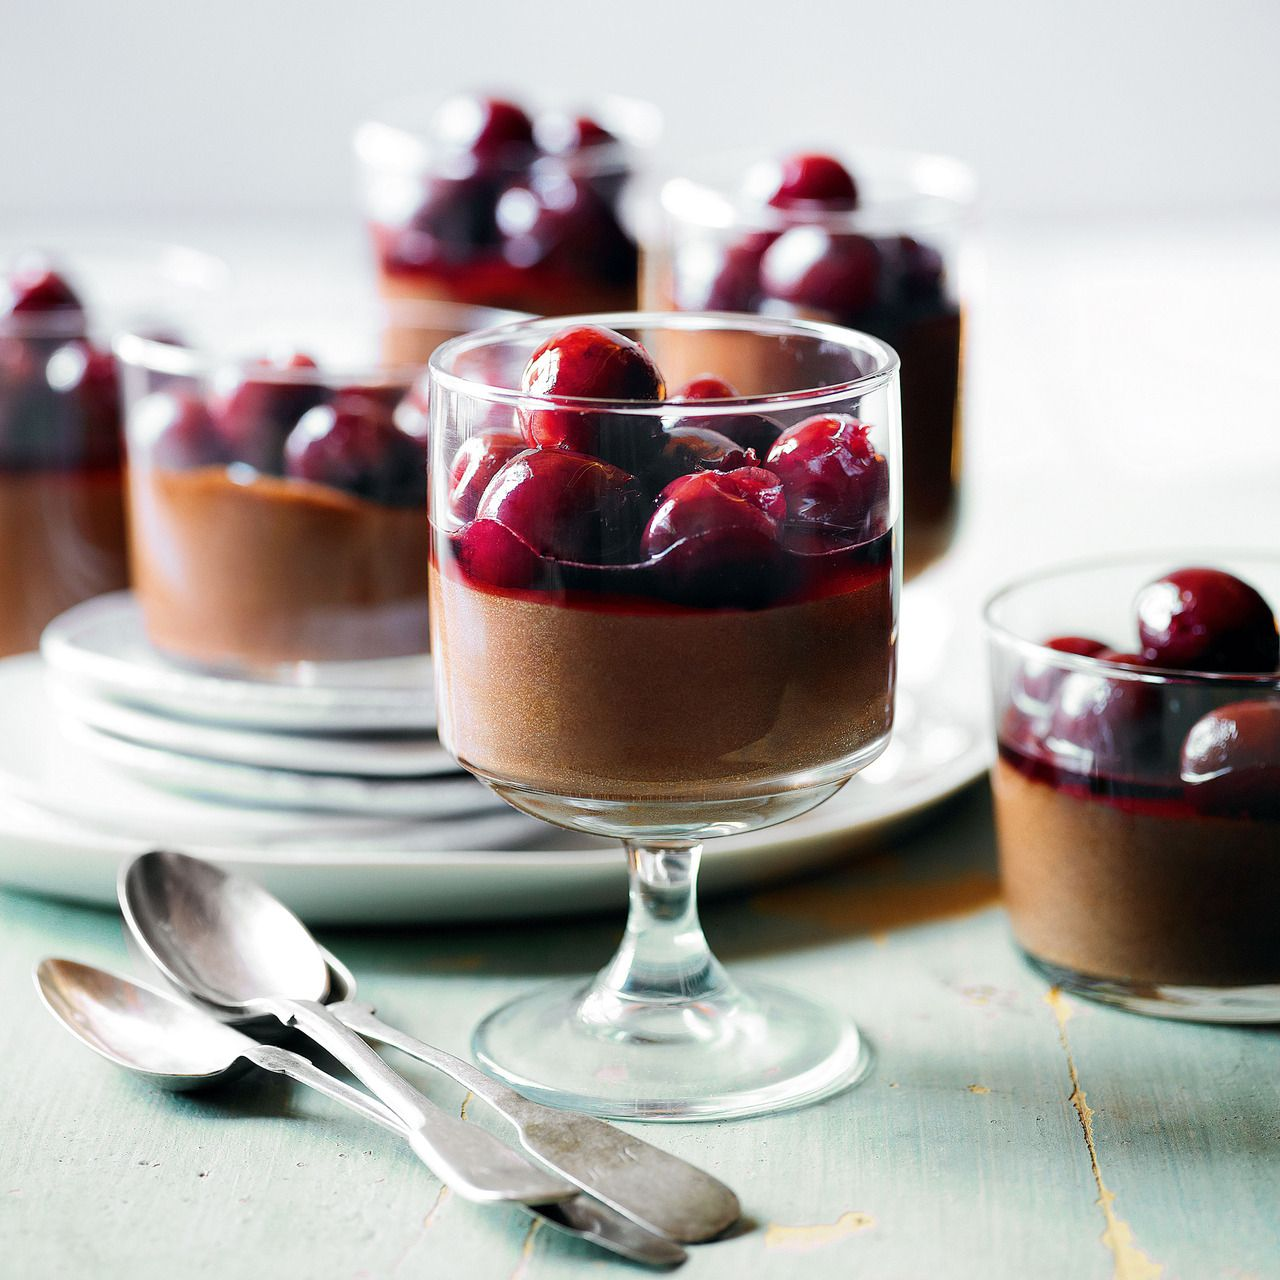 Cardamom Chocolate Mousse with Fresh Cherry Compote, a delicious recipe in the new M&S app.